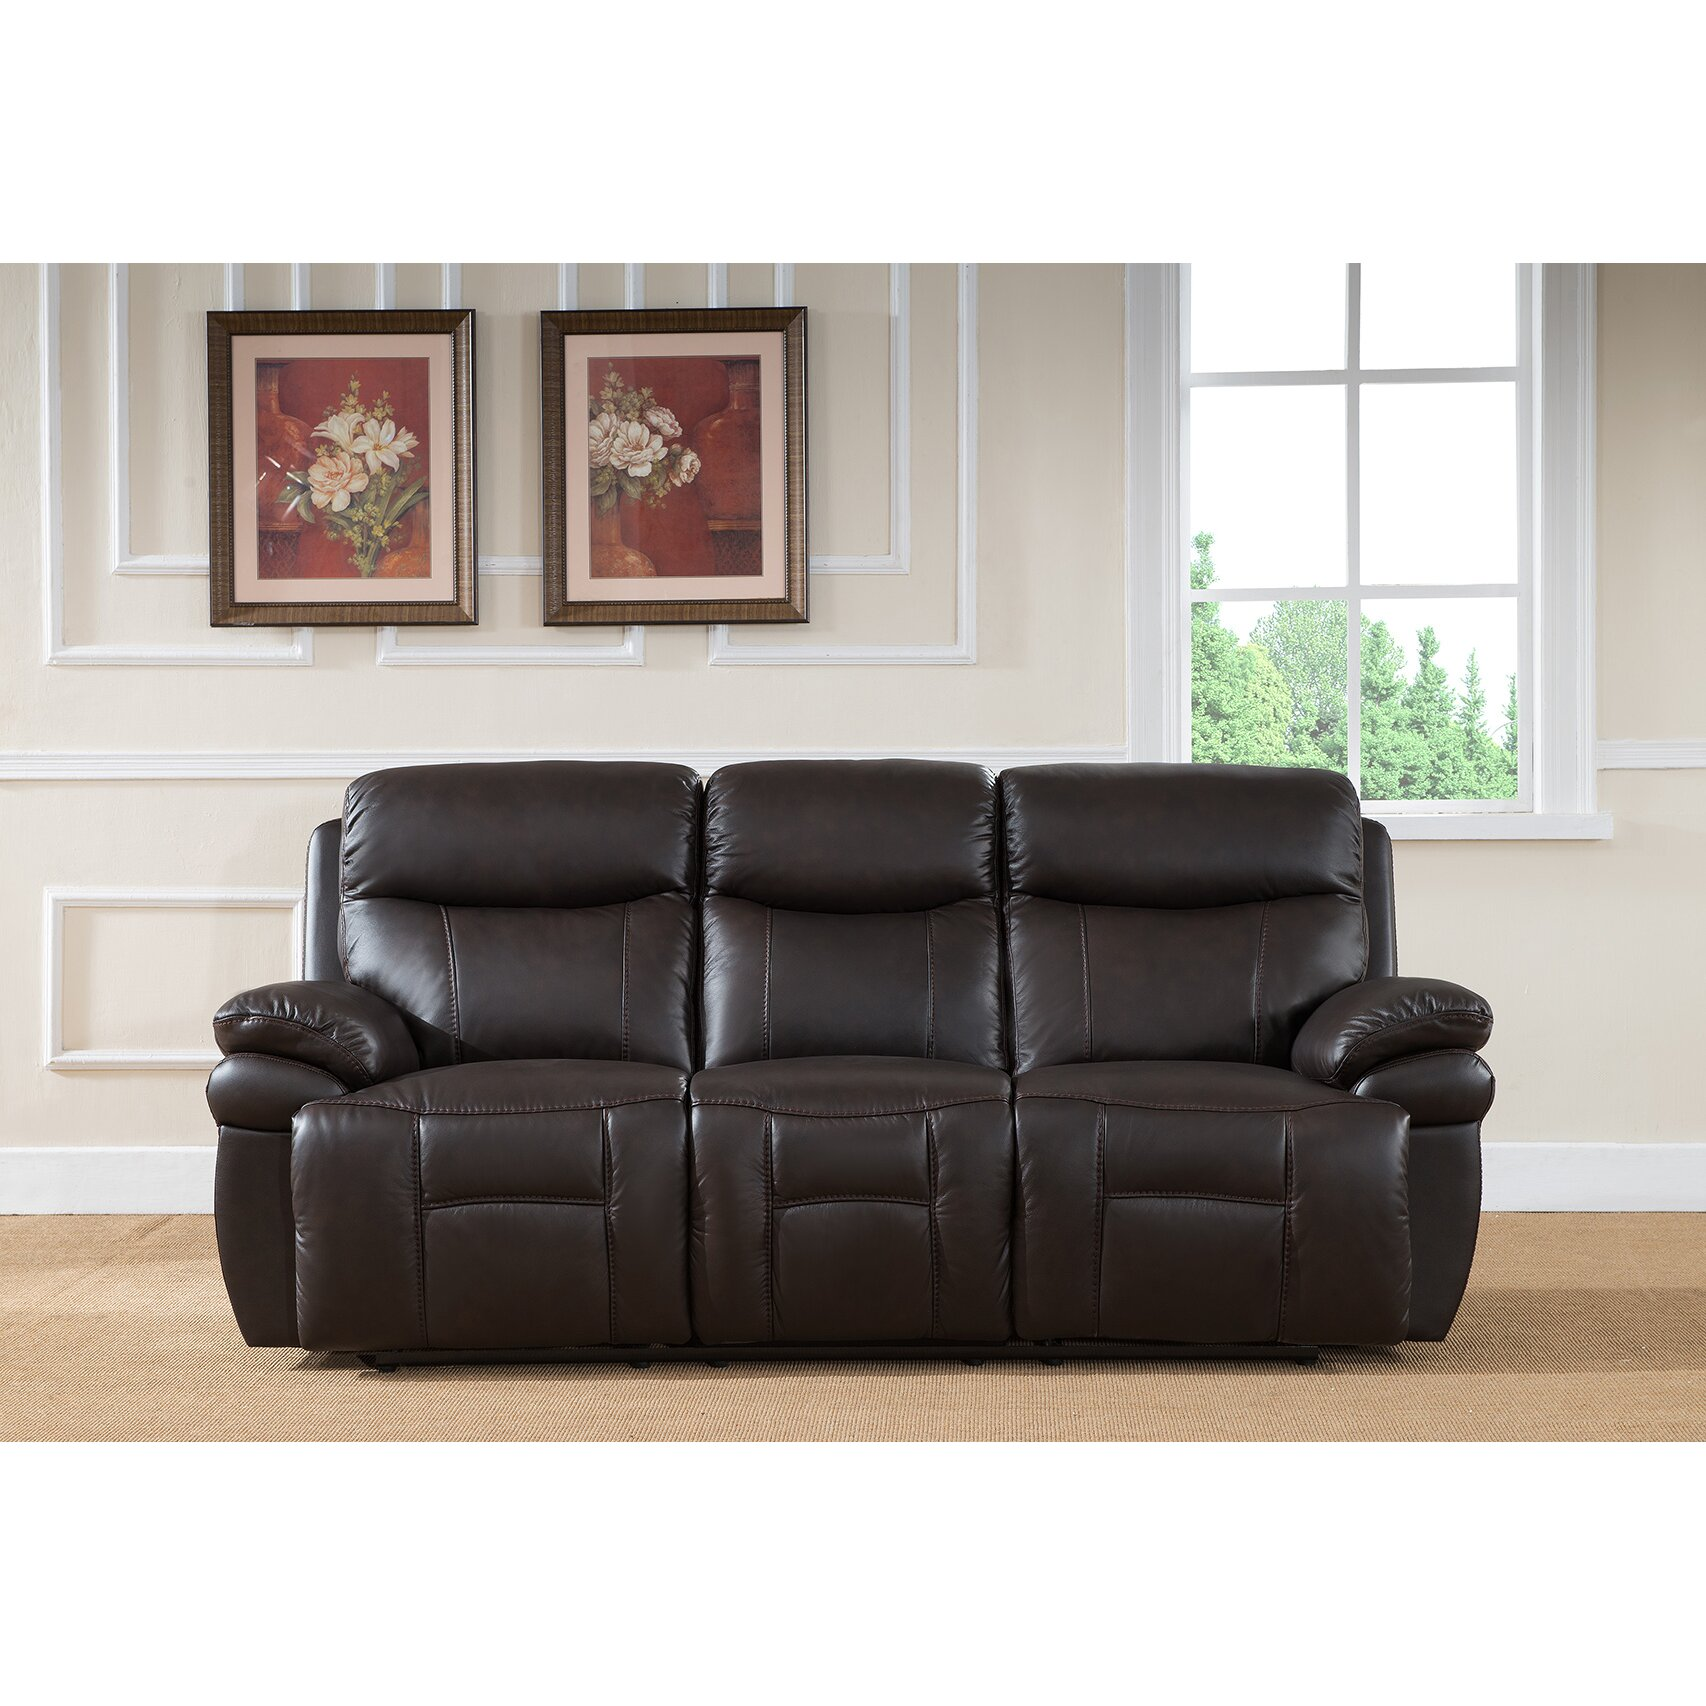 Amax rushmore 3 piece leather living room set reviews for Leather living room sets